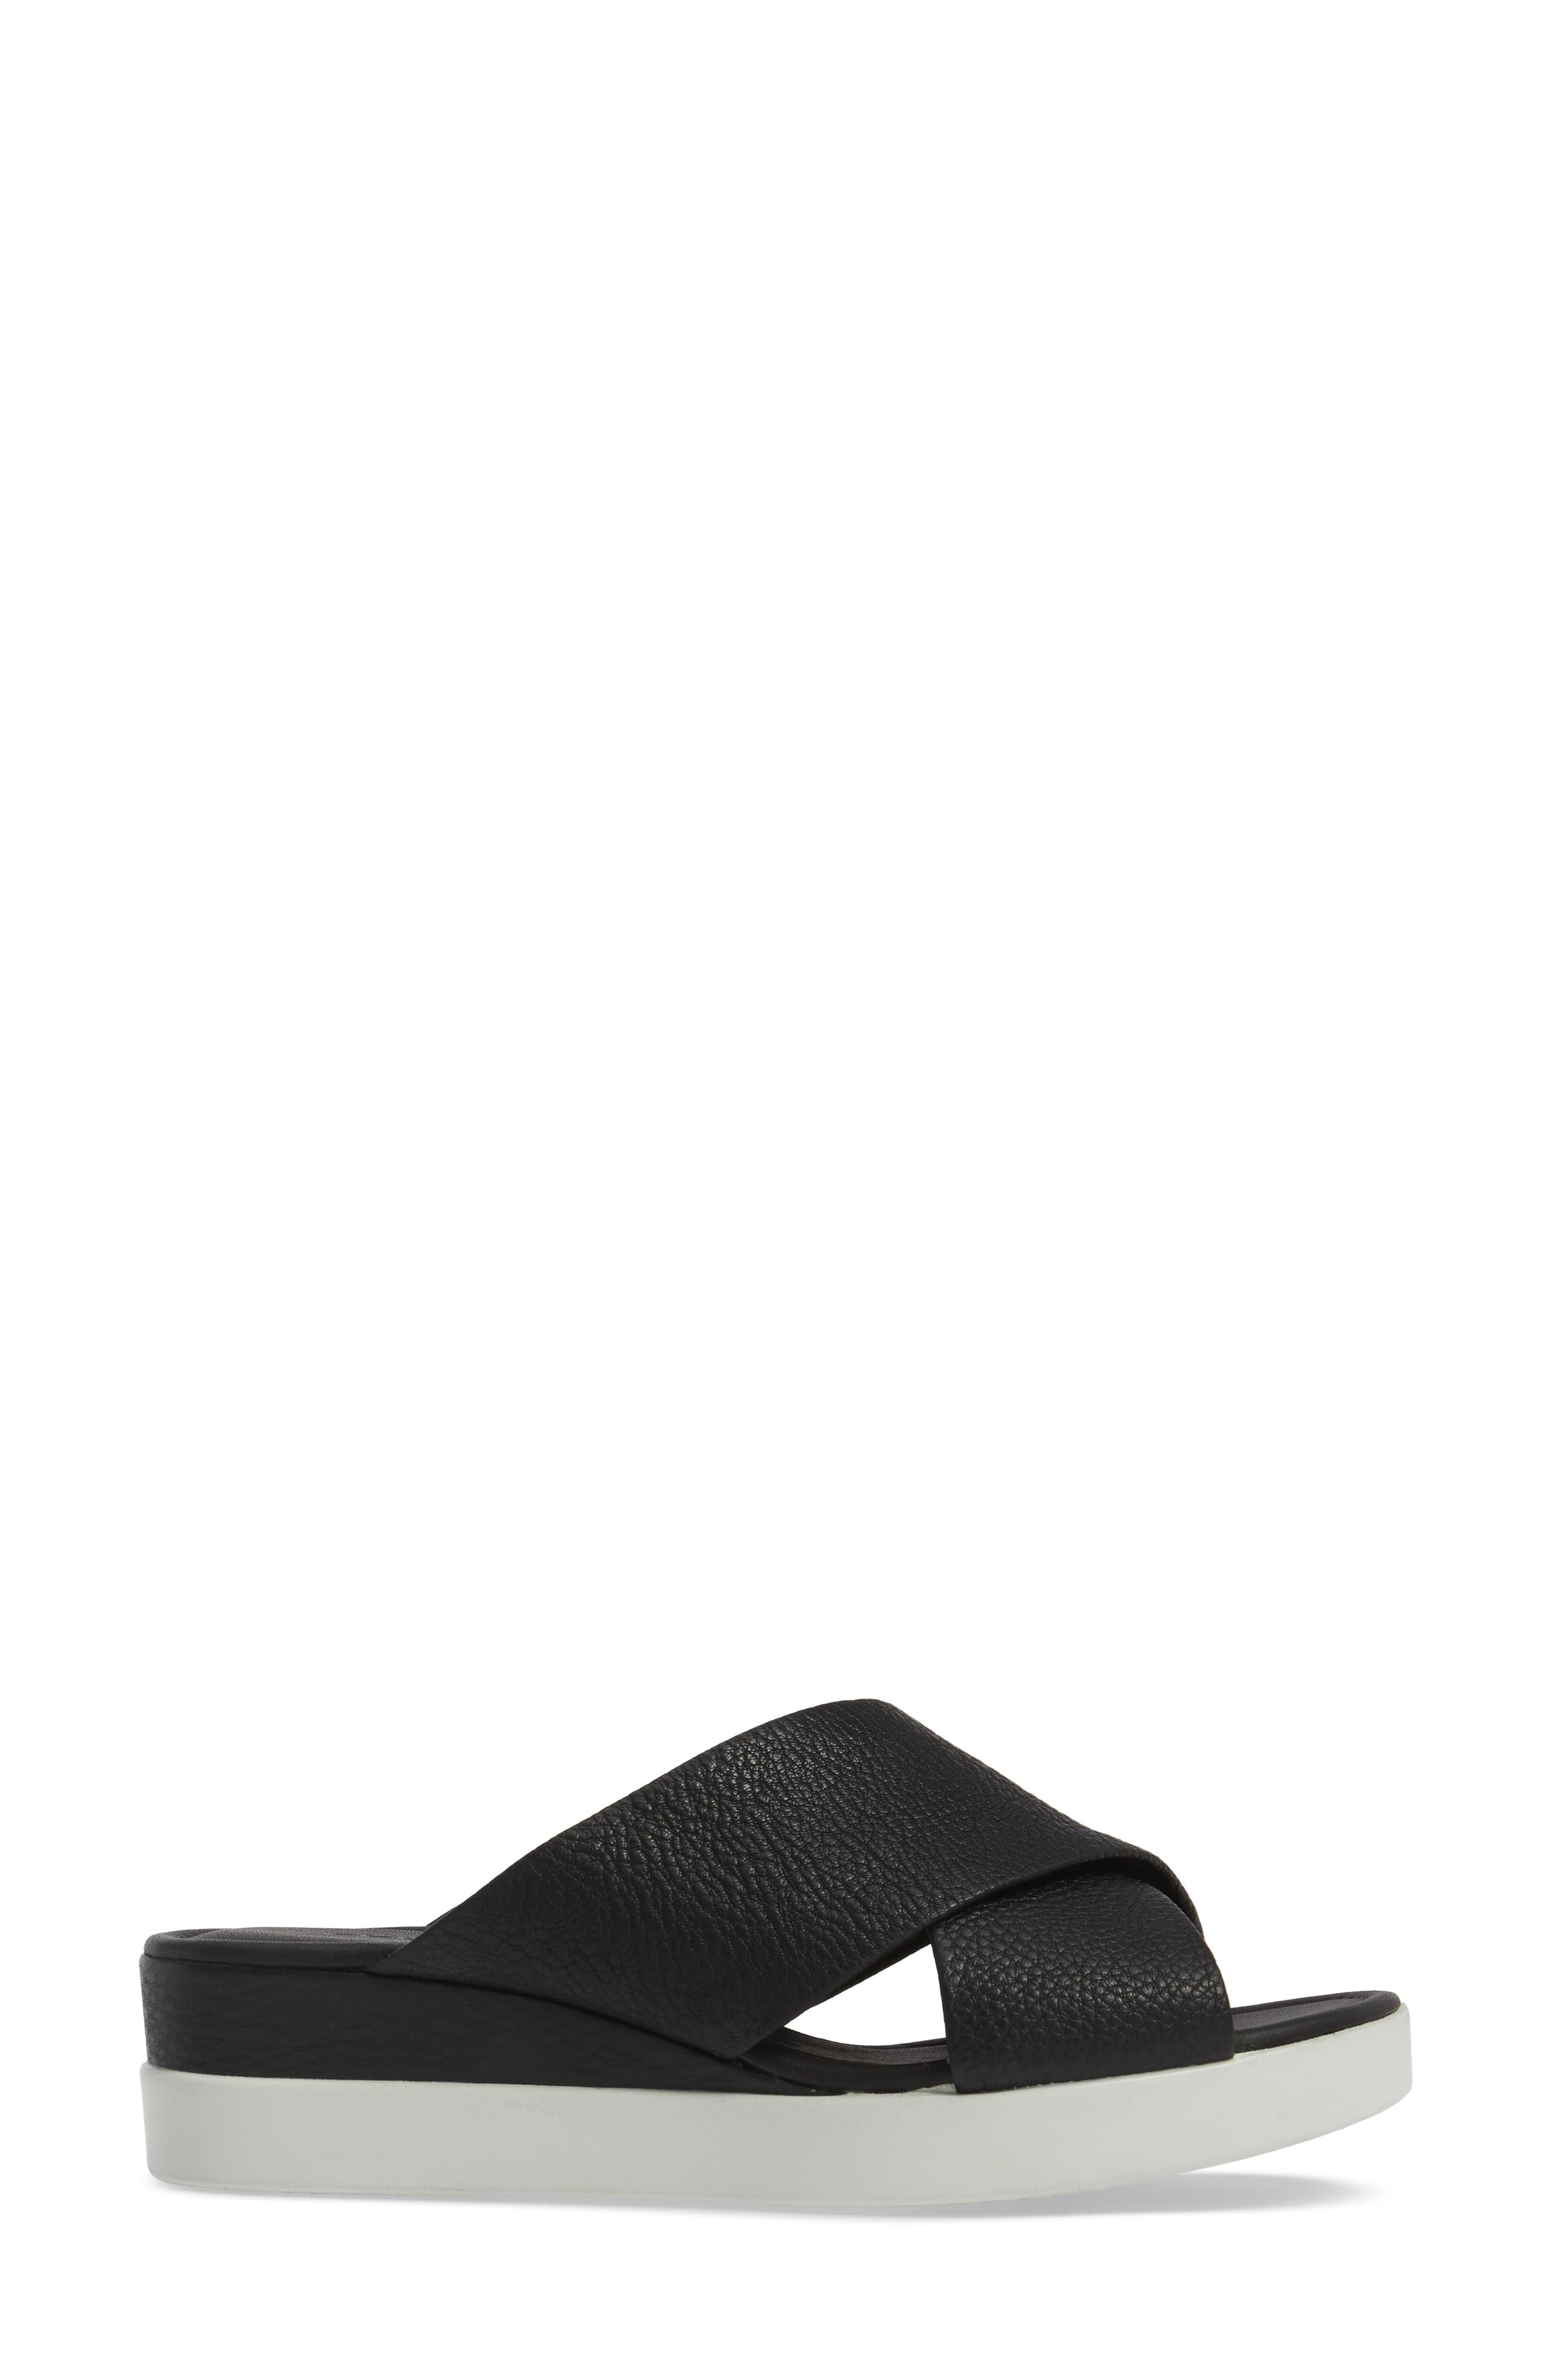 Touch Slide Sandal,                             Alternate thumbnail 10, color,